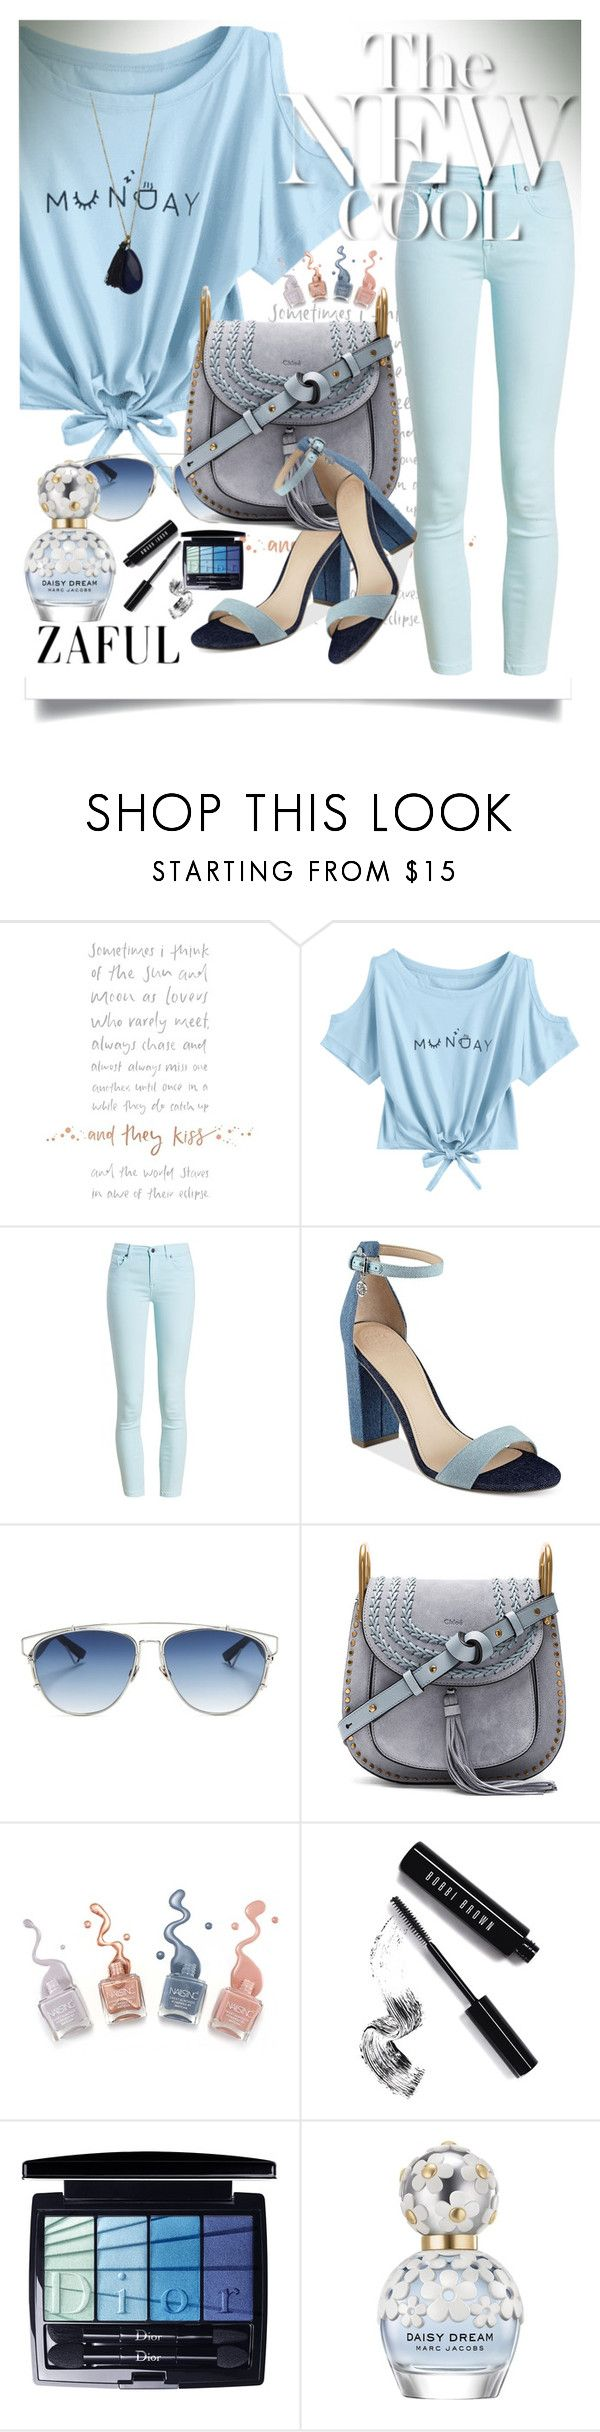 """""""Summer trend, short sleeve t-shirt"""" by manuela-cdl ❤ liked on Polyvore featuring Barbour, GUESS, Christian Dior, Chloé, Bobbi Brown Cosmetics and Marc Jacobs"""